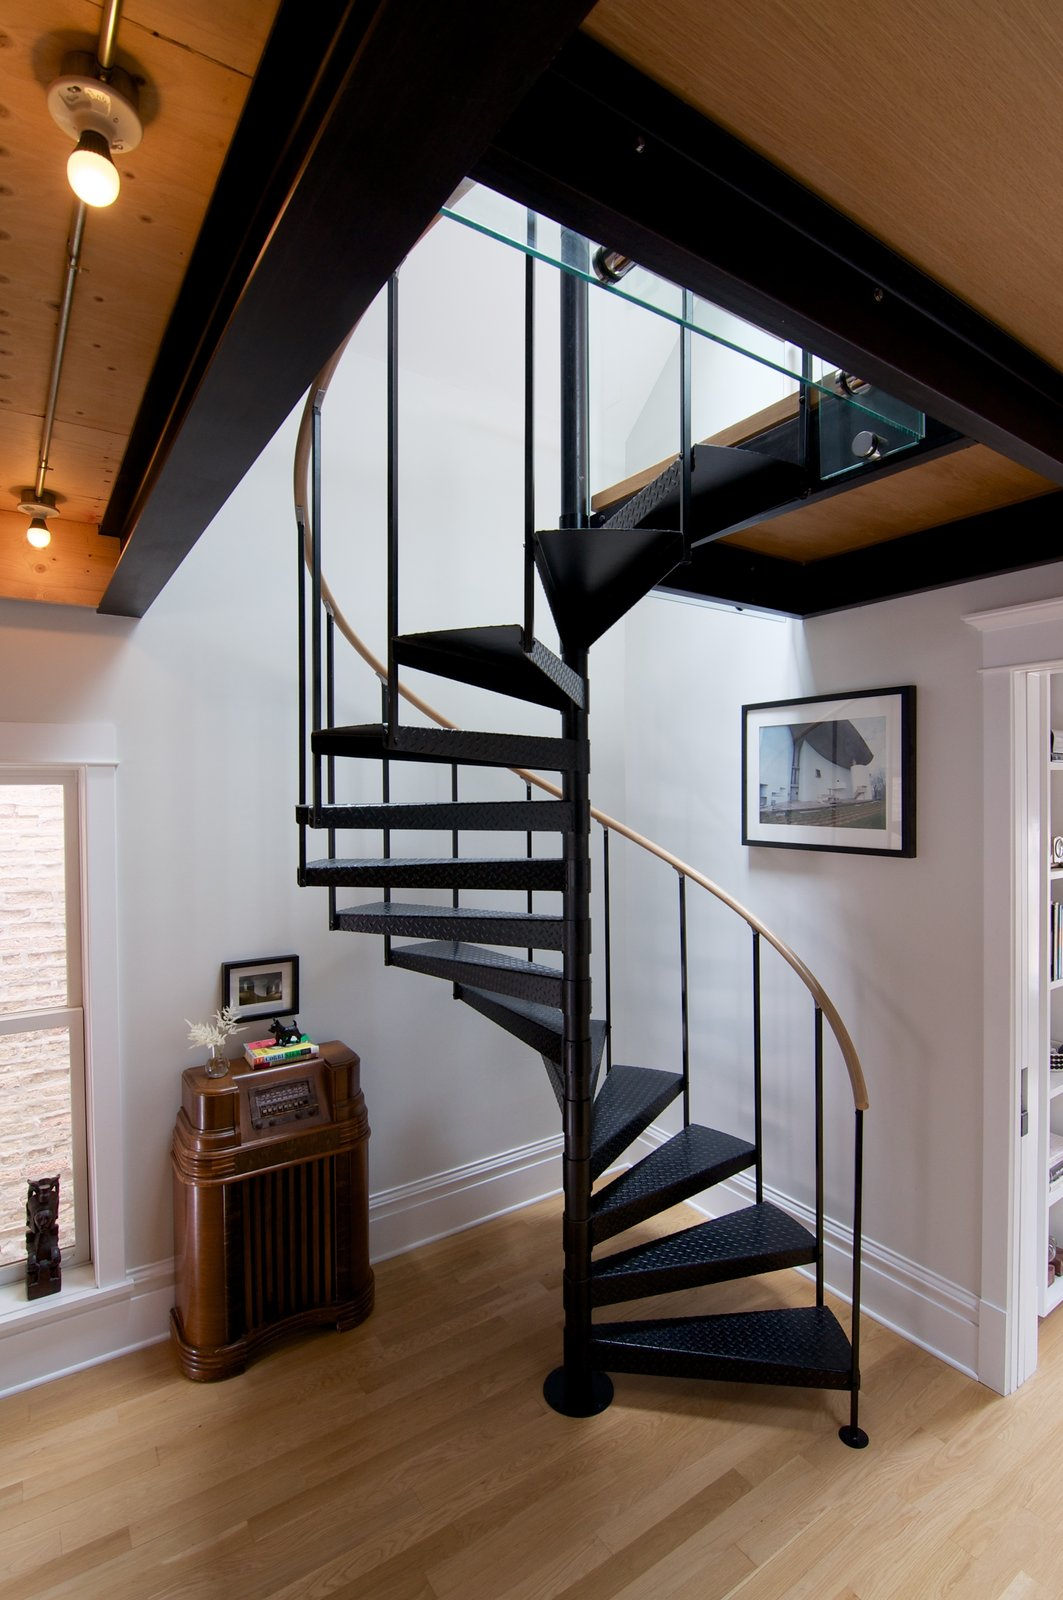 Shively had a carpenter from TomKal Construction build a custom handrail, out of white oak to match his floors, for this spiral staircase. A Chicago Renovation Taps Into its Attic to Almost Double its Square Footage - Photo 6 of 8